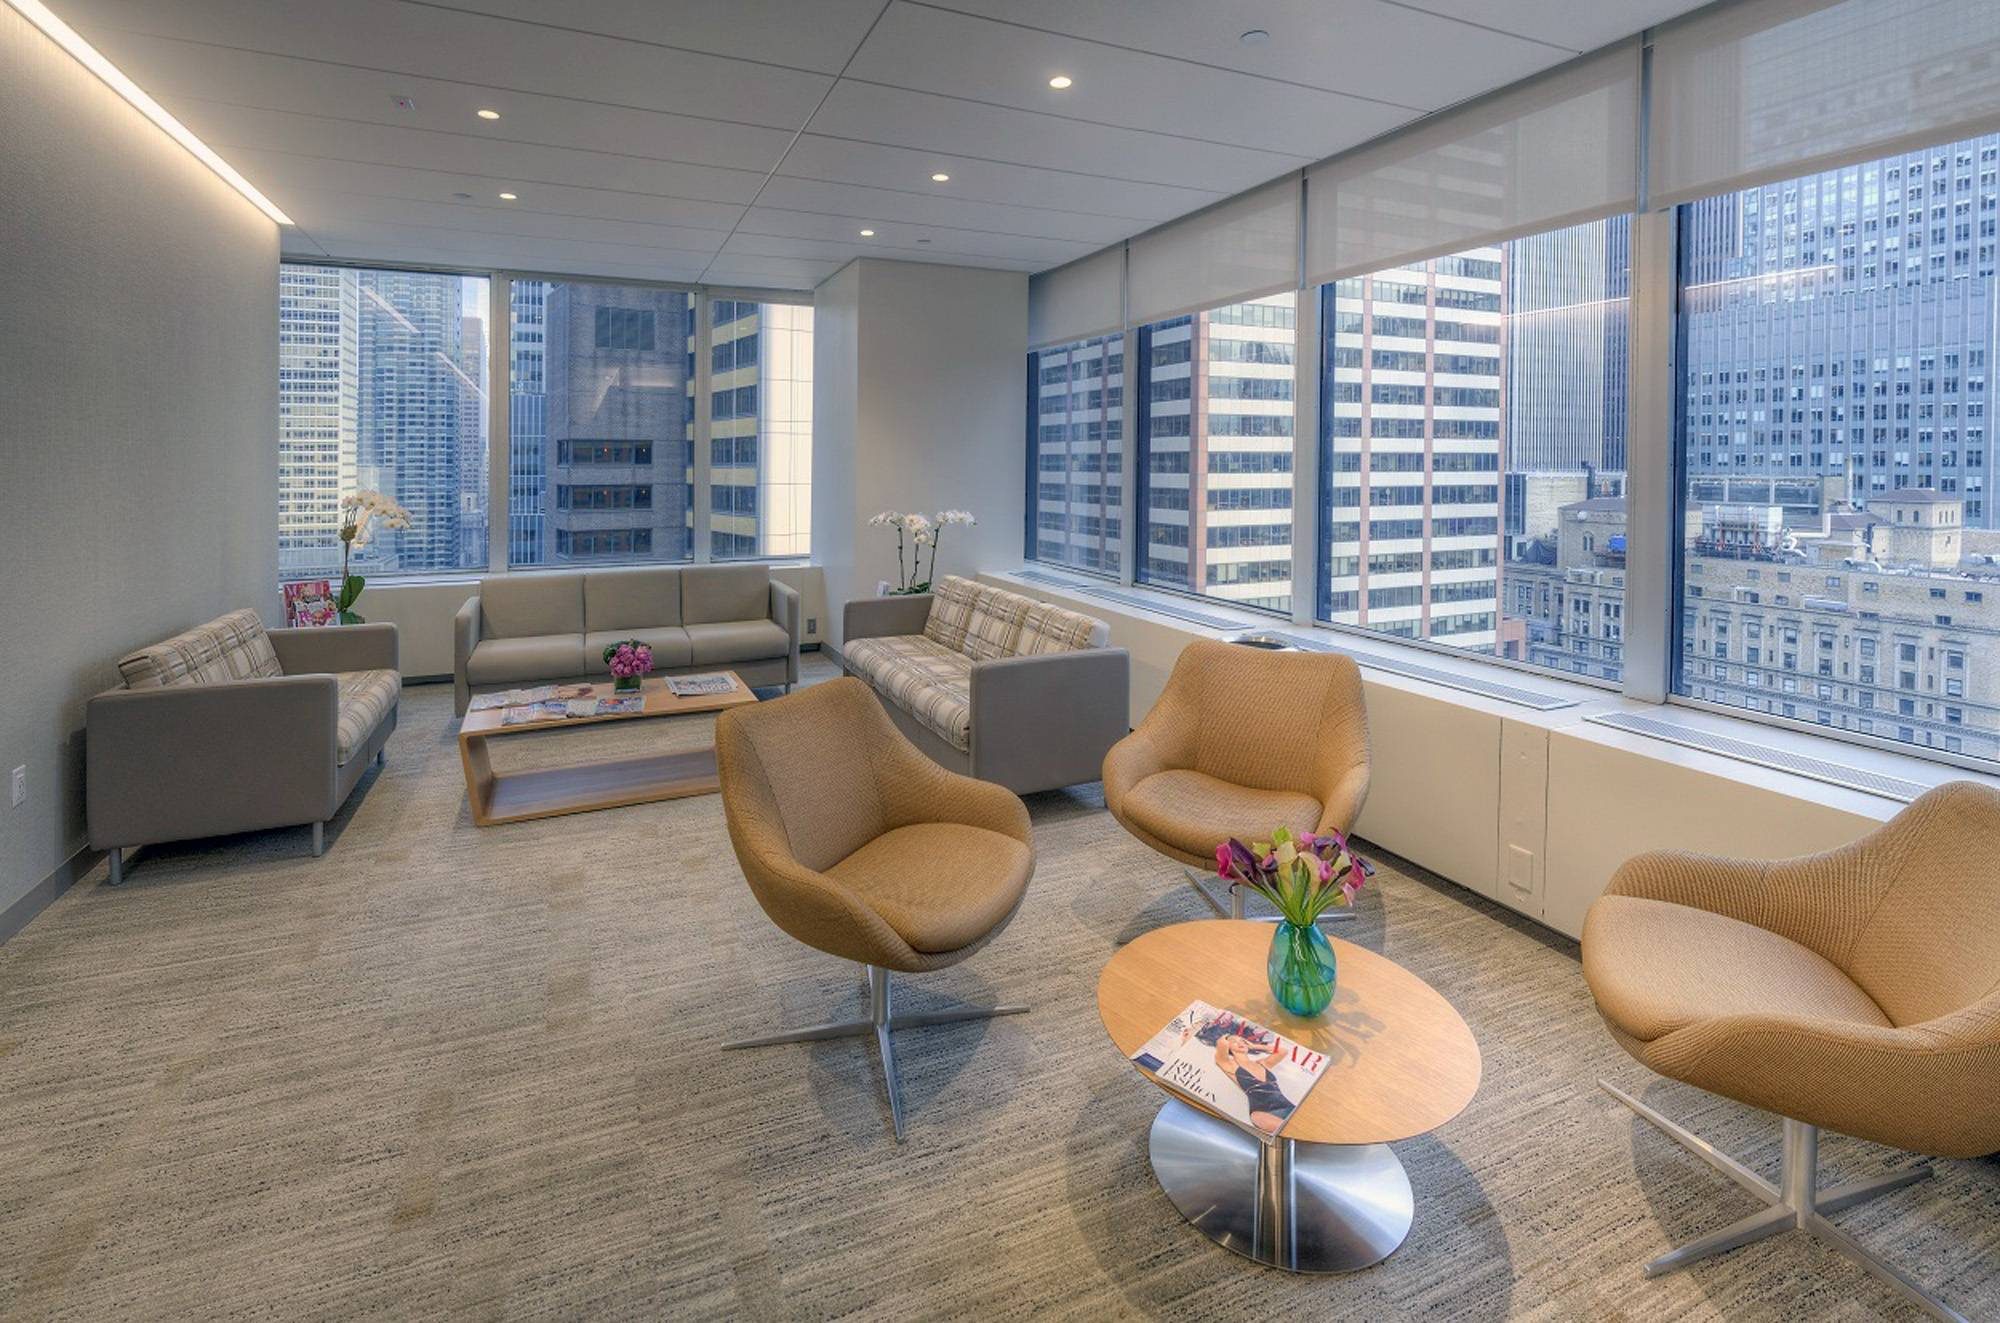 Sunlight streams in to a serene, calming waiting space overlooking midtown New York's bustling cityscape, at the Colorado Center for Reproductive Medicine's New York offices.